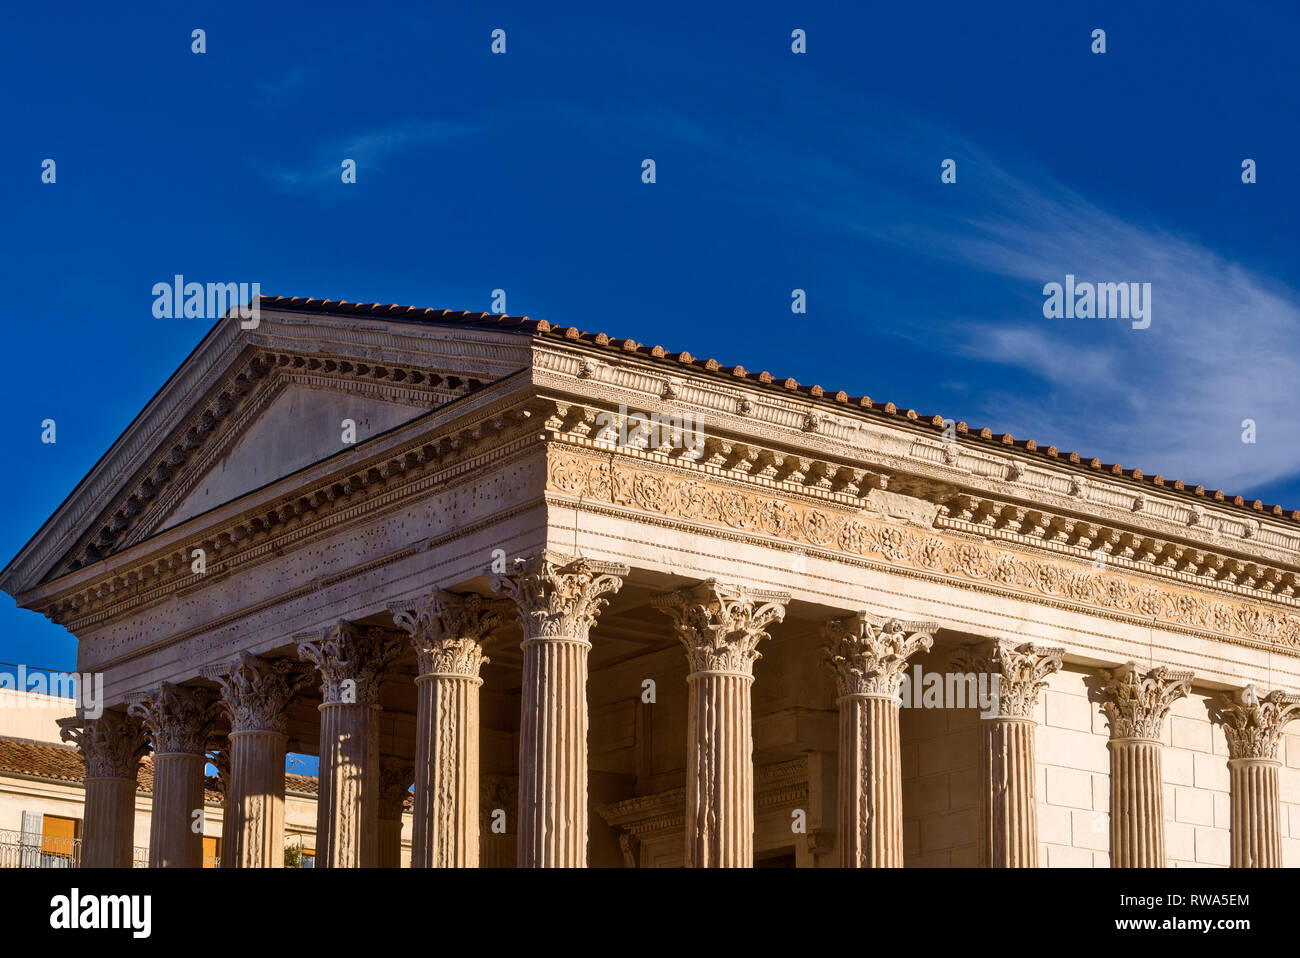 The Maison Carrée is a Roman temple in Nîmes, France - Stock Image